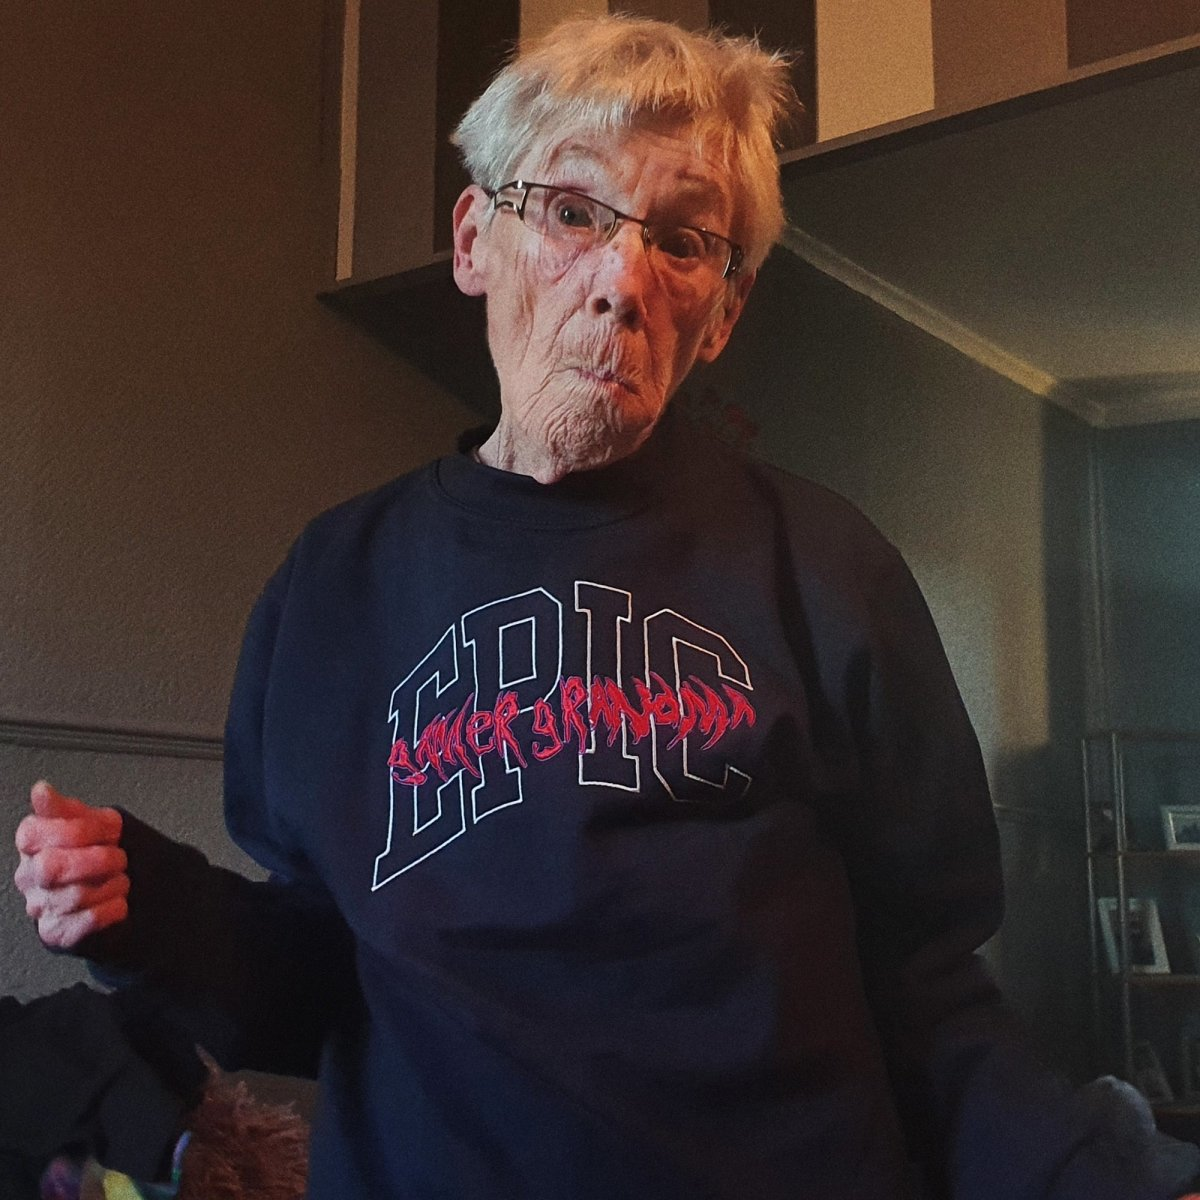 Epic Gamer Grandma - College Navy Unisex Embroidered Sweater - The Fresh Stuff